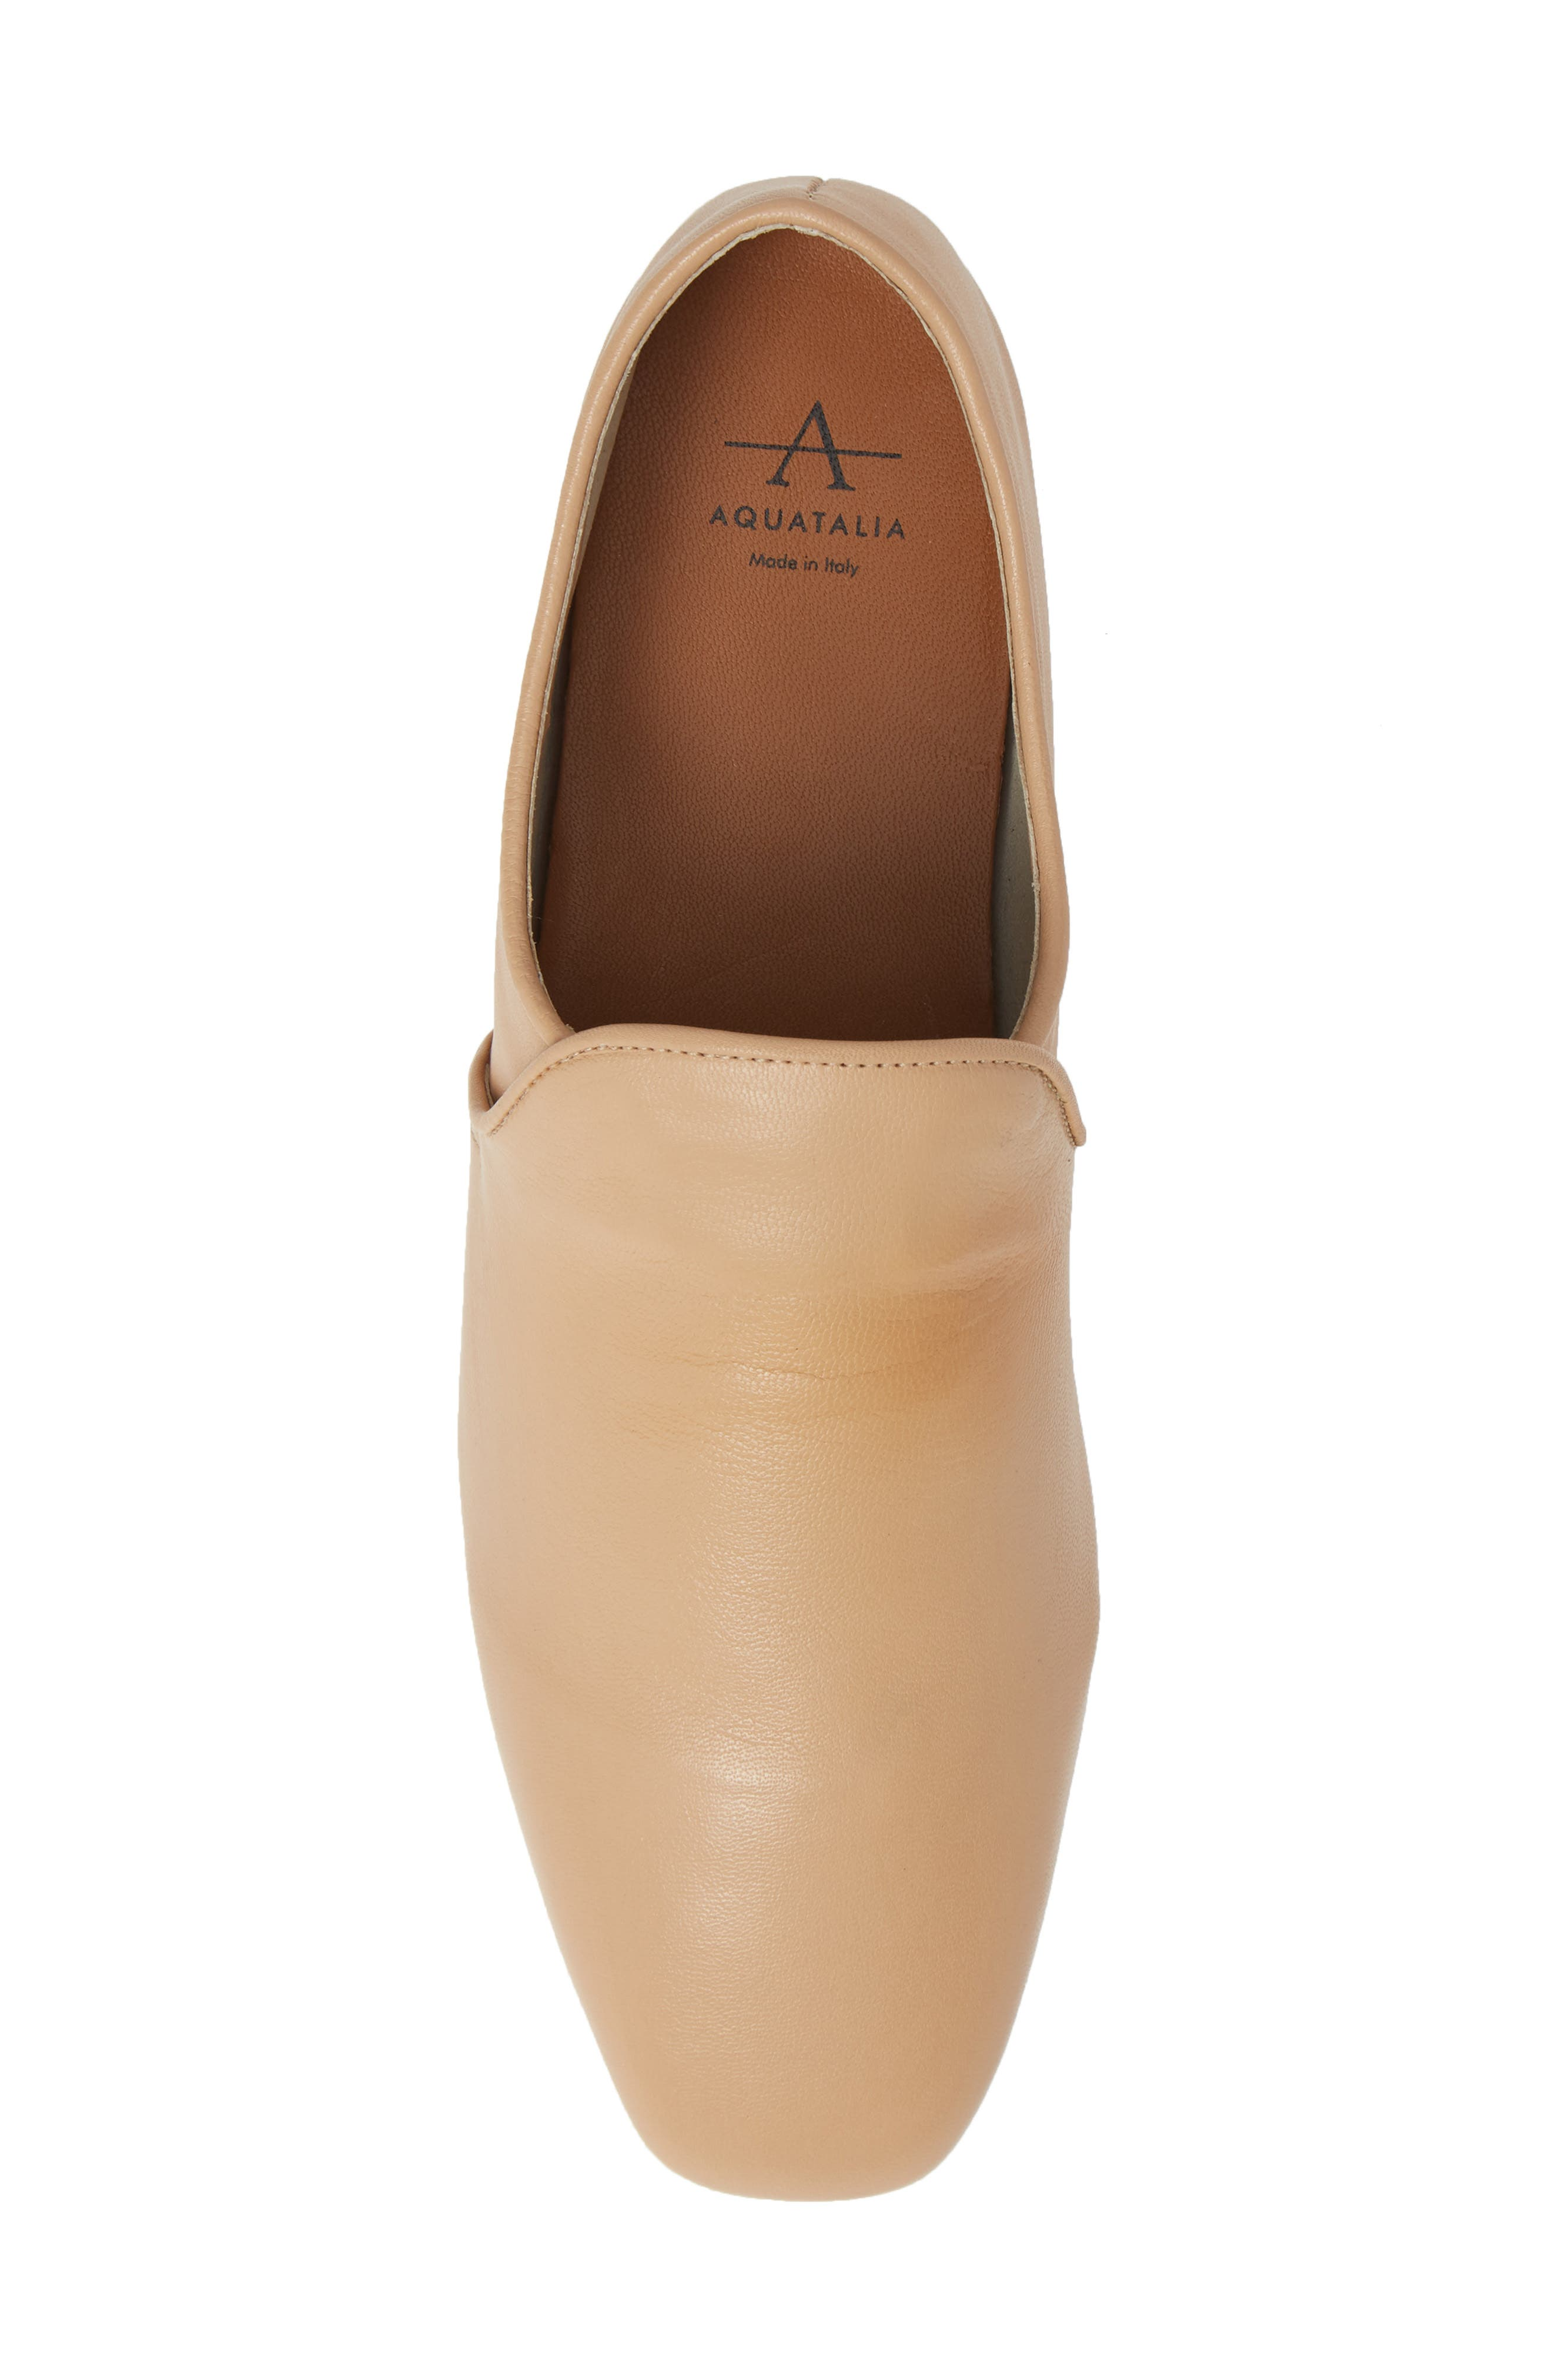 AQUATALIA, Revy Weatherporoof Loafer, Alternate thumbnail 5, color, NUDE NAPPA